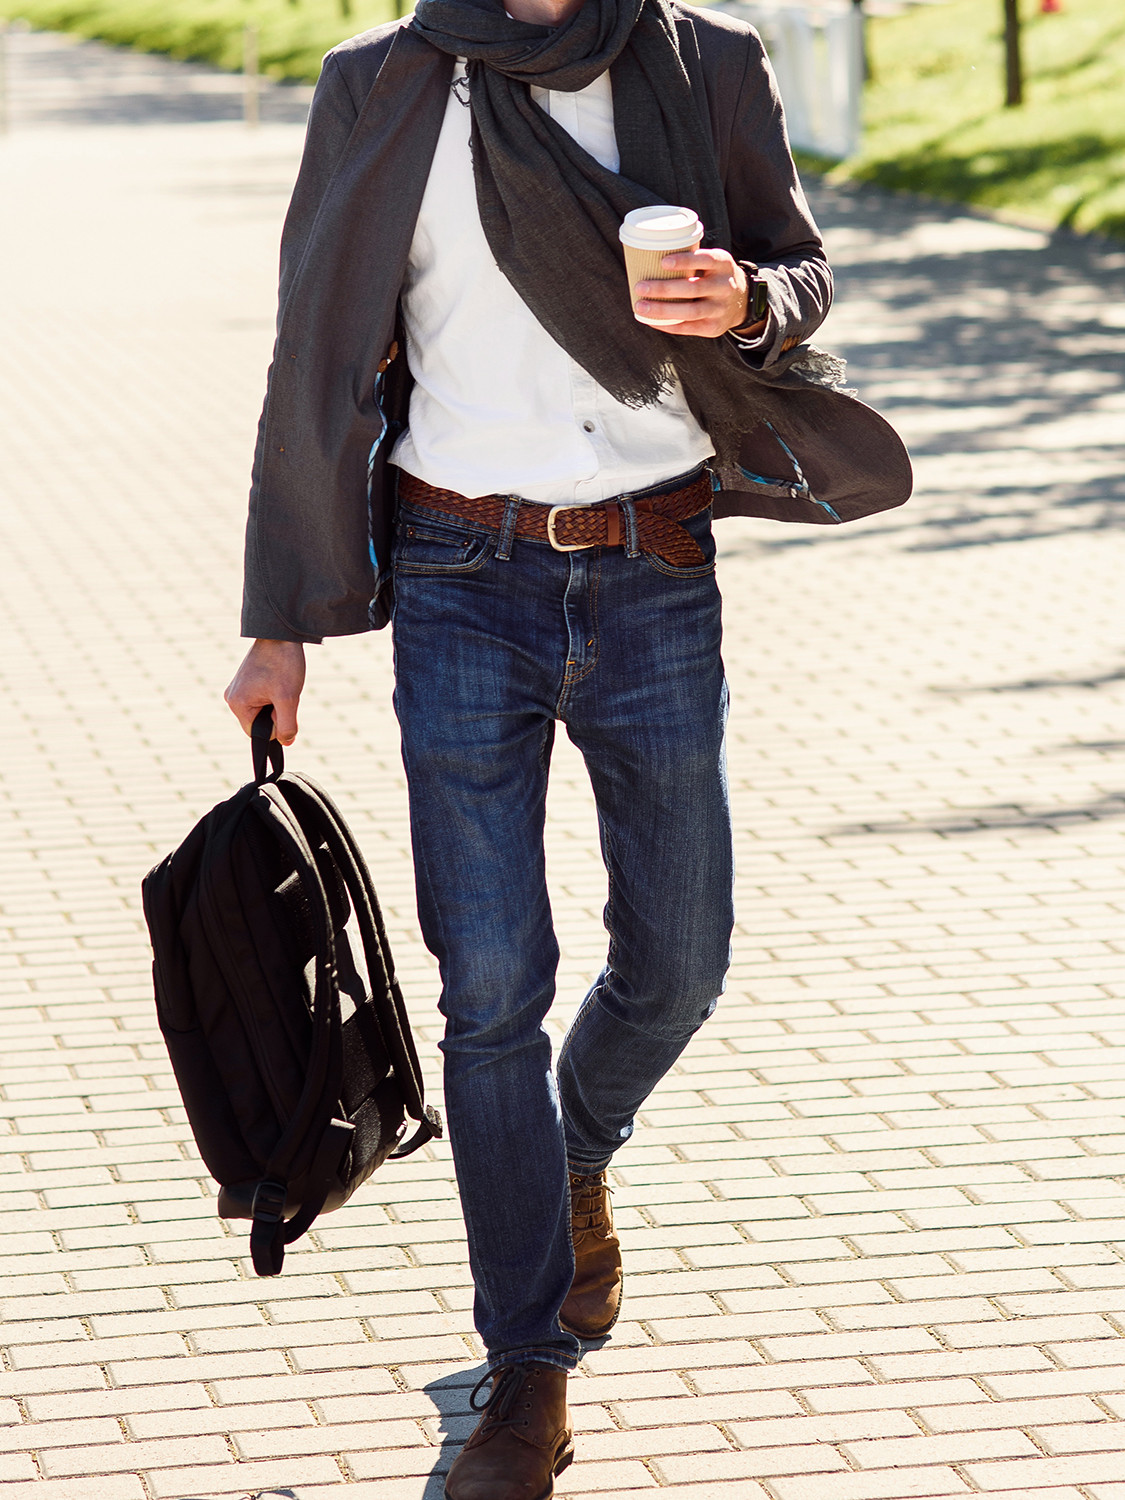 Men's outfit idea for 2021 with gray blazer, white casual shirt, mid blue jeans, black backpack, brown chukka boots. Suitable for spring and fall.